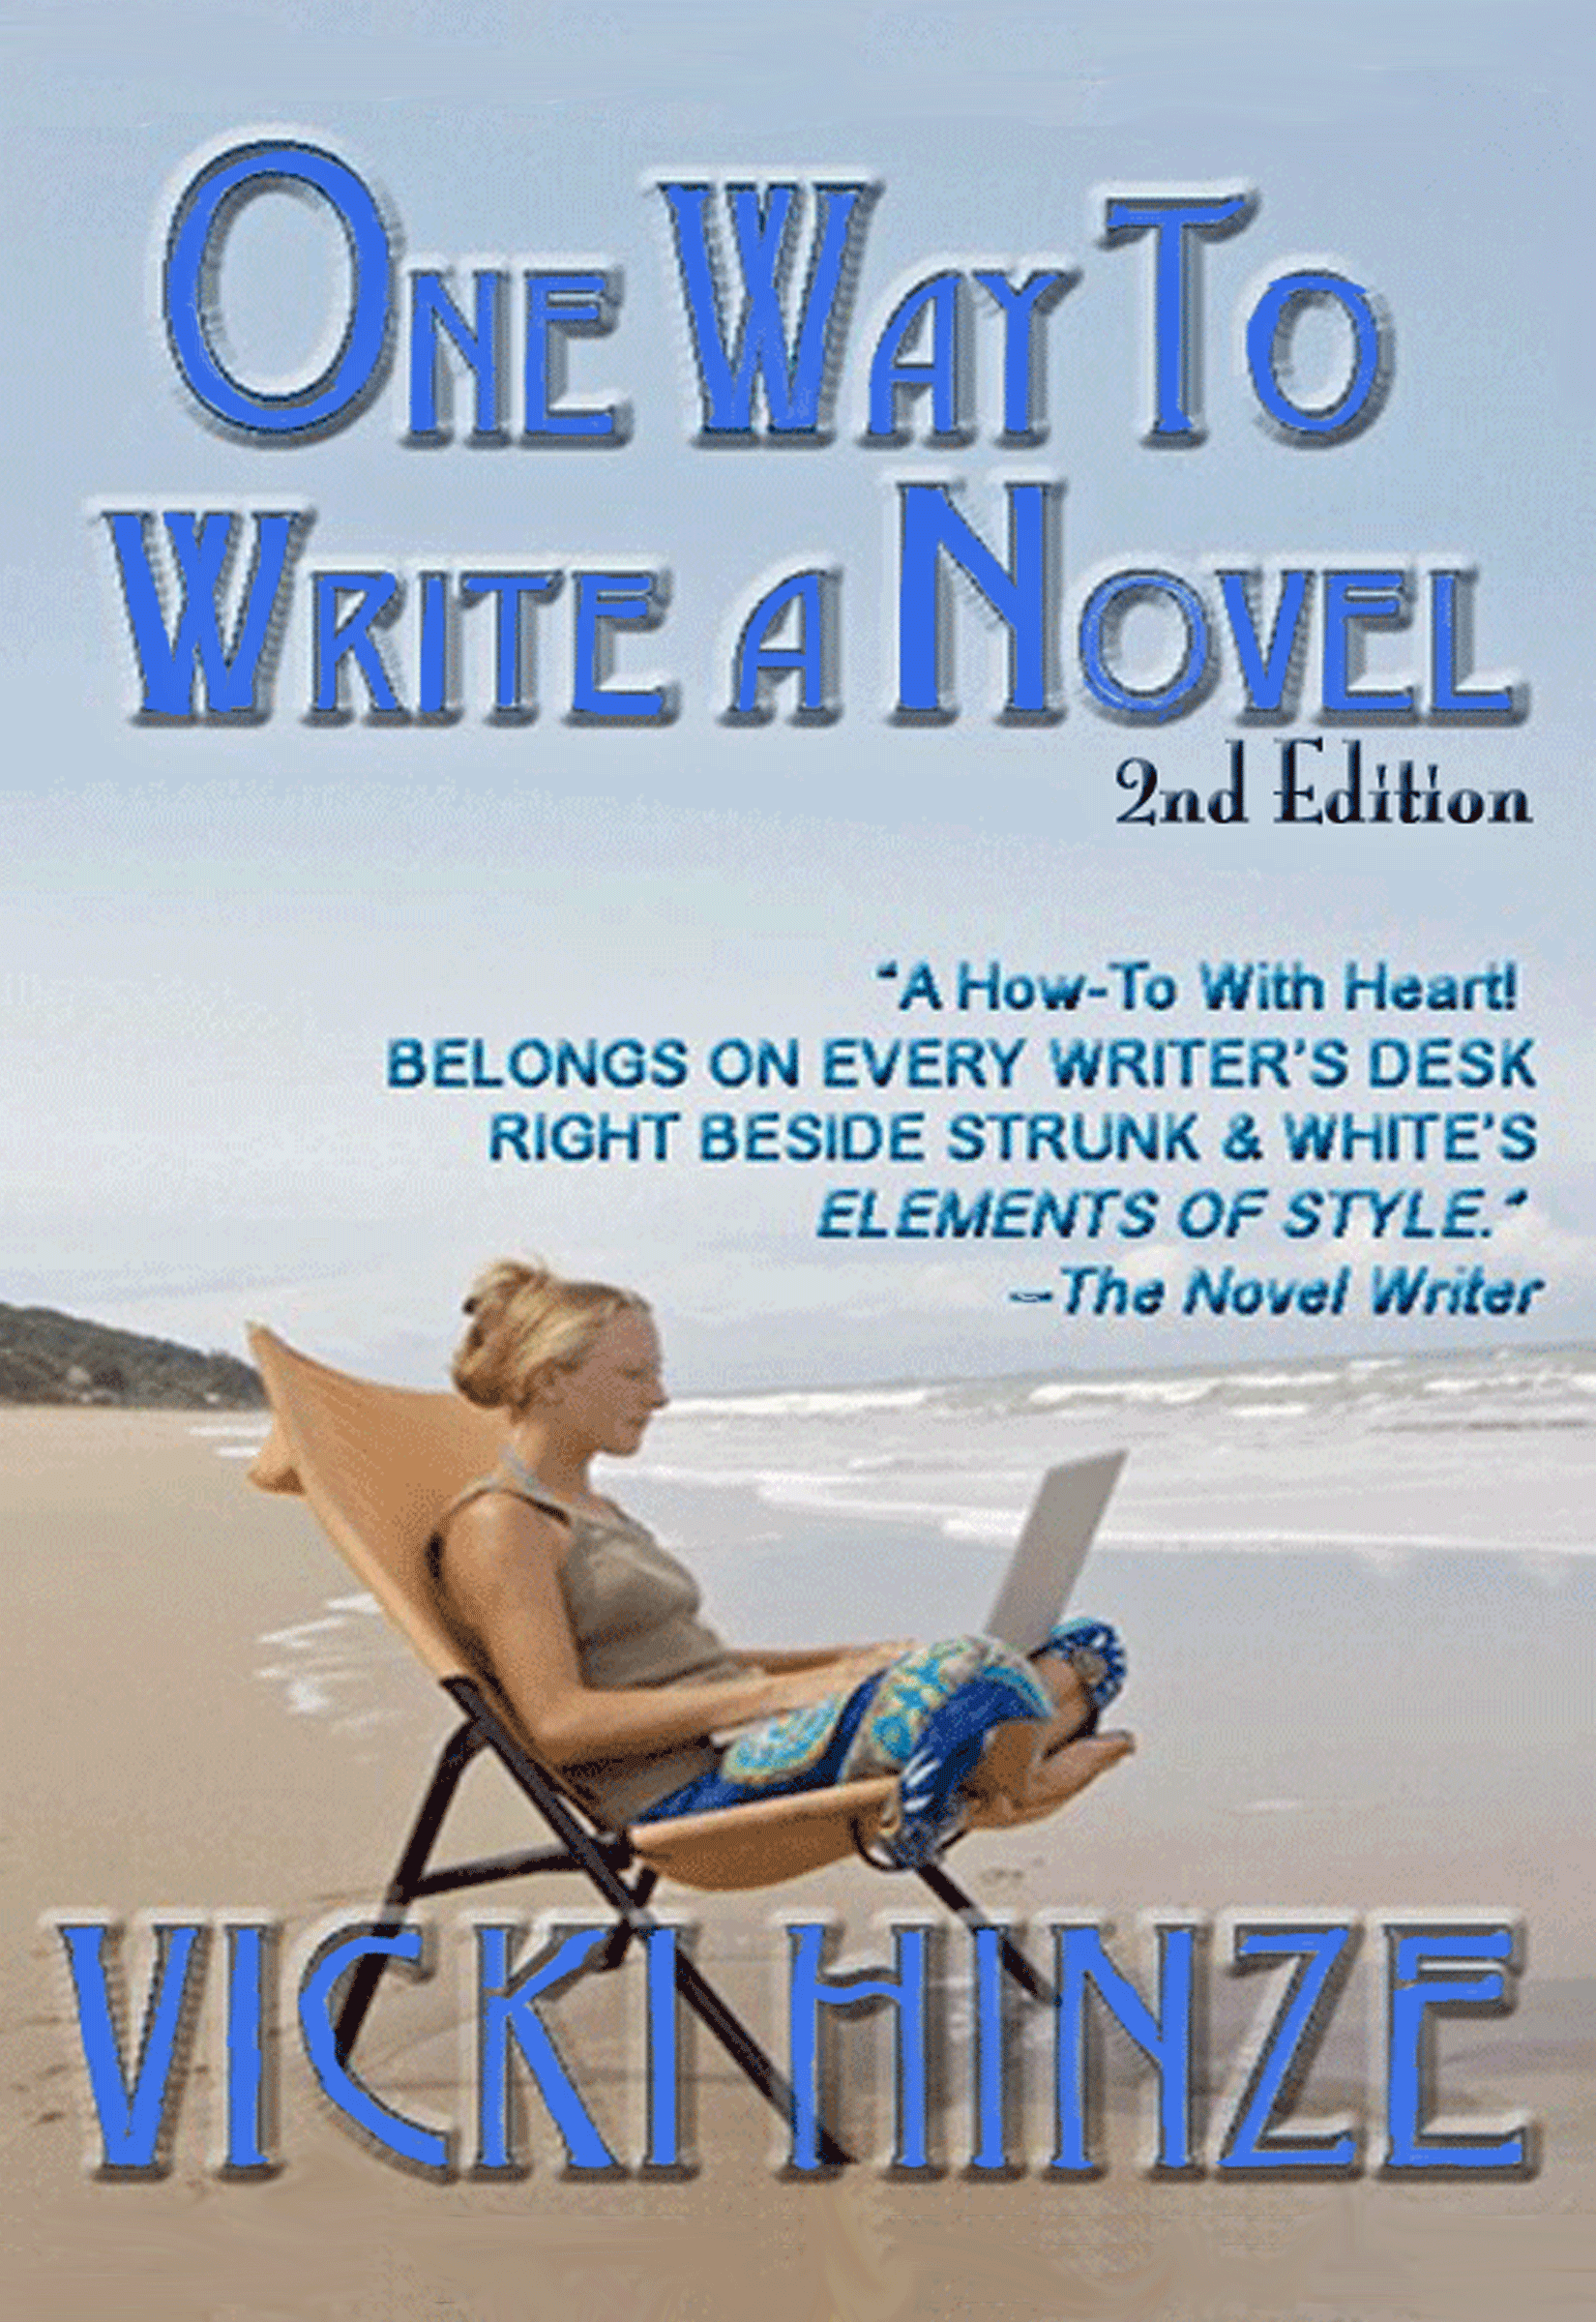 43 Ways to Find the Best Book Idea for a New Writer